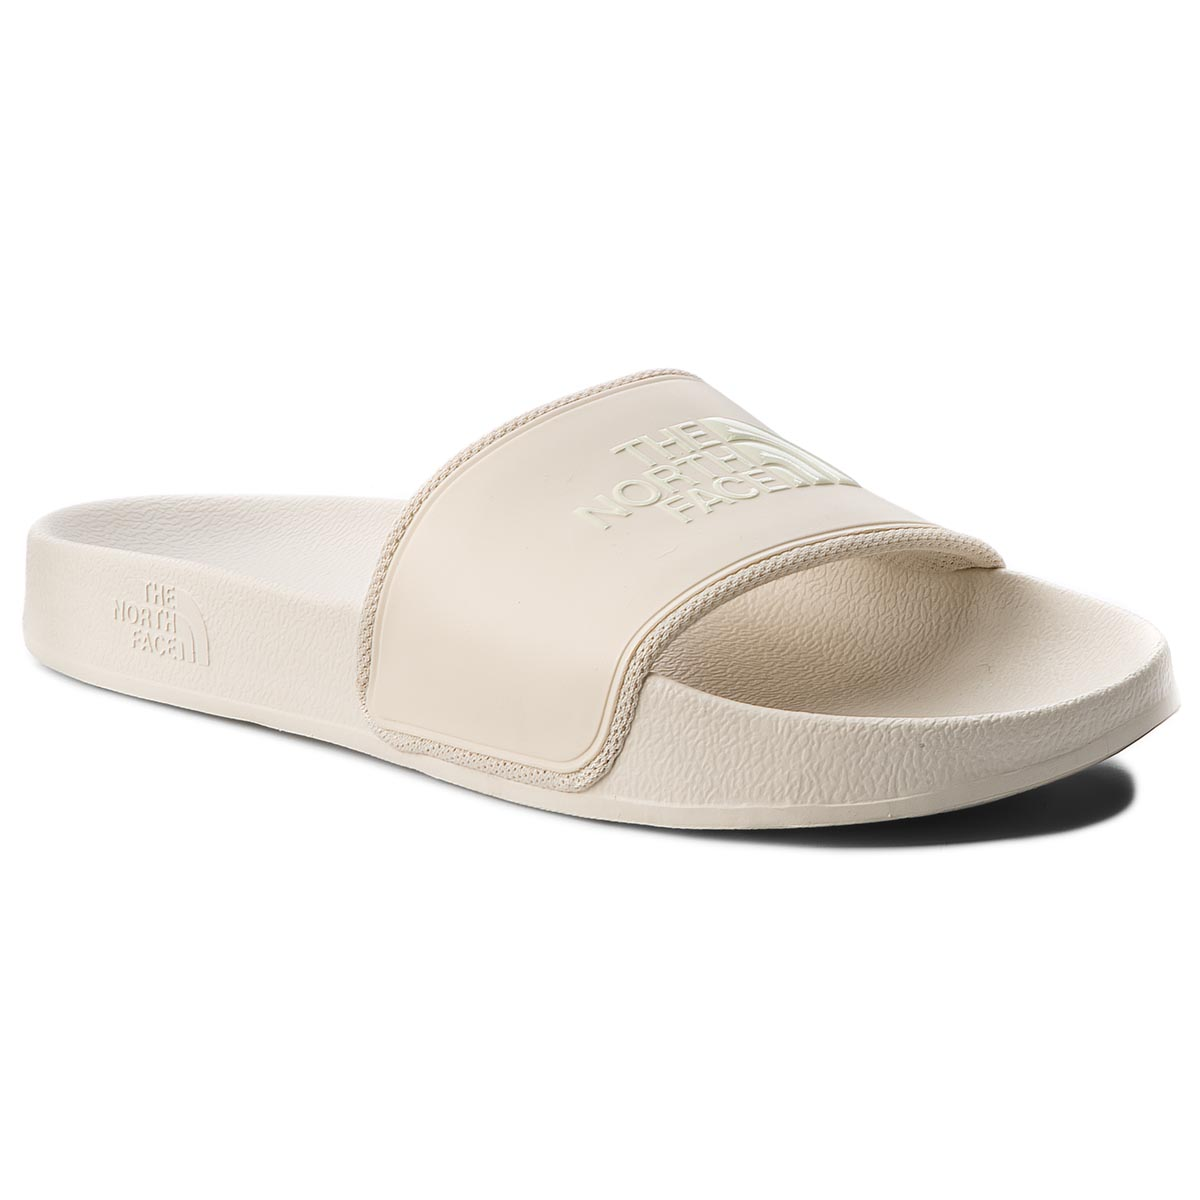 Șlapi THE NORTH FACE - Base Camp Slide II T93K4BK82 Vintage White/Vintage White